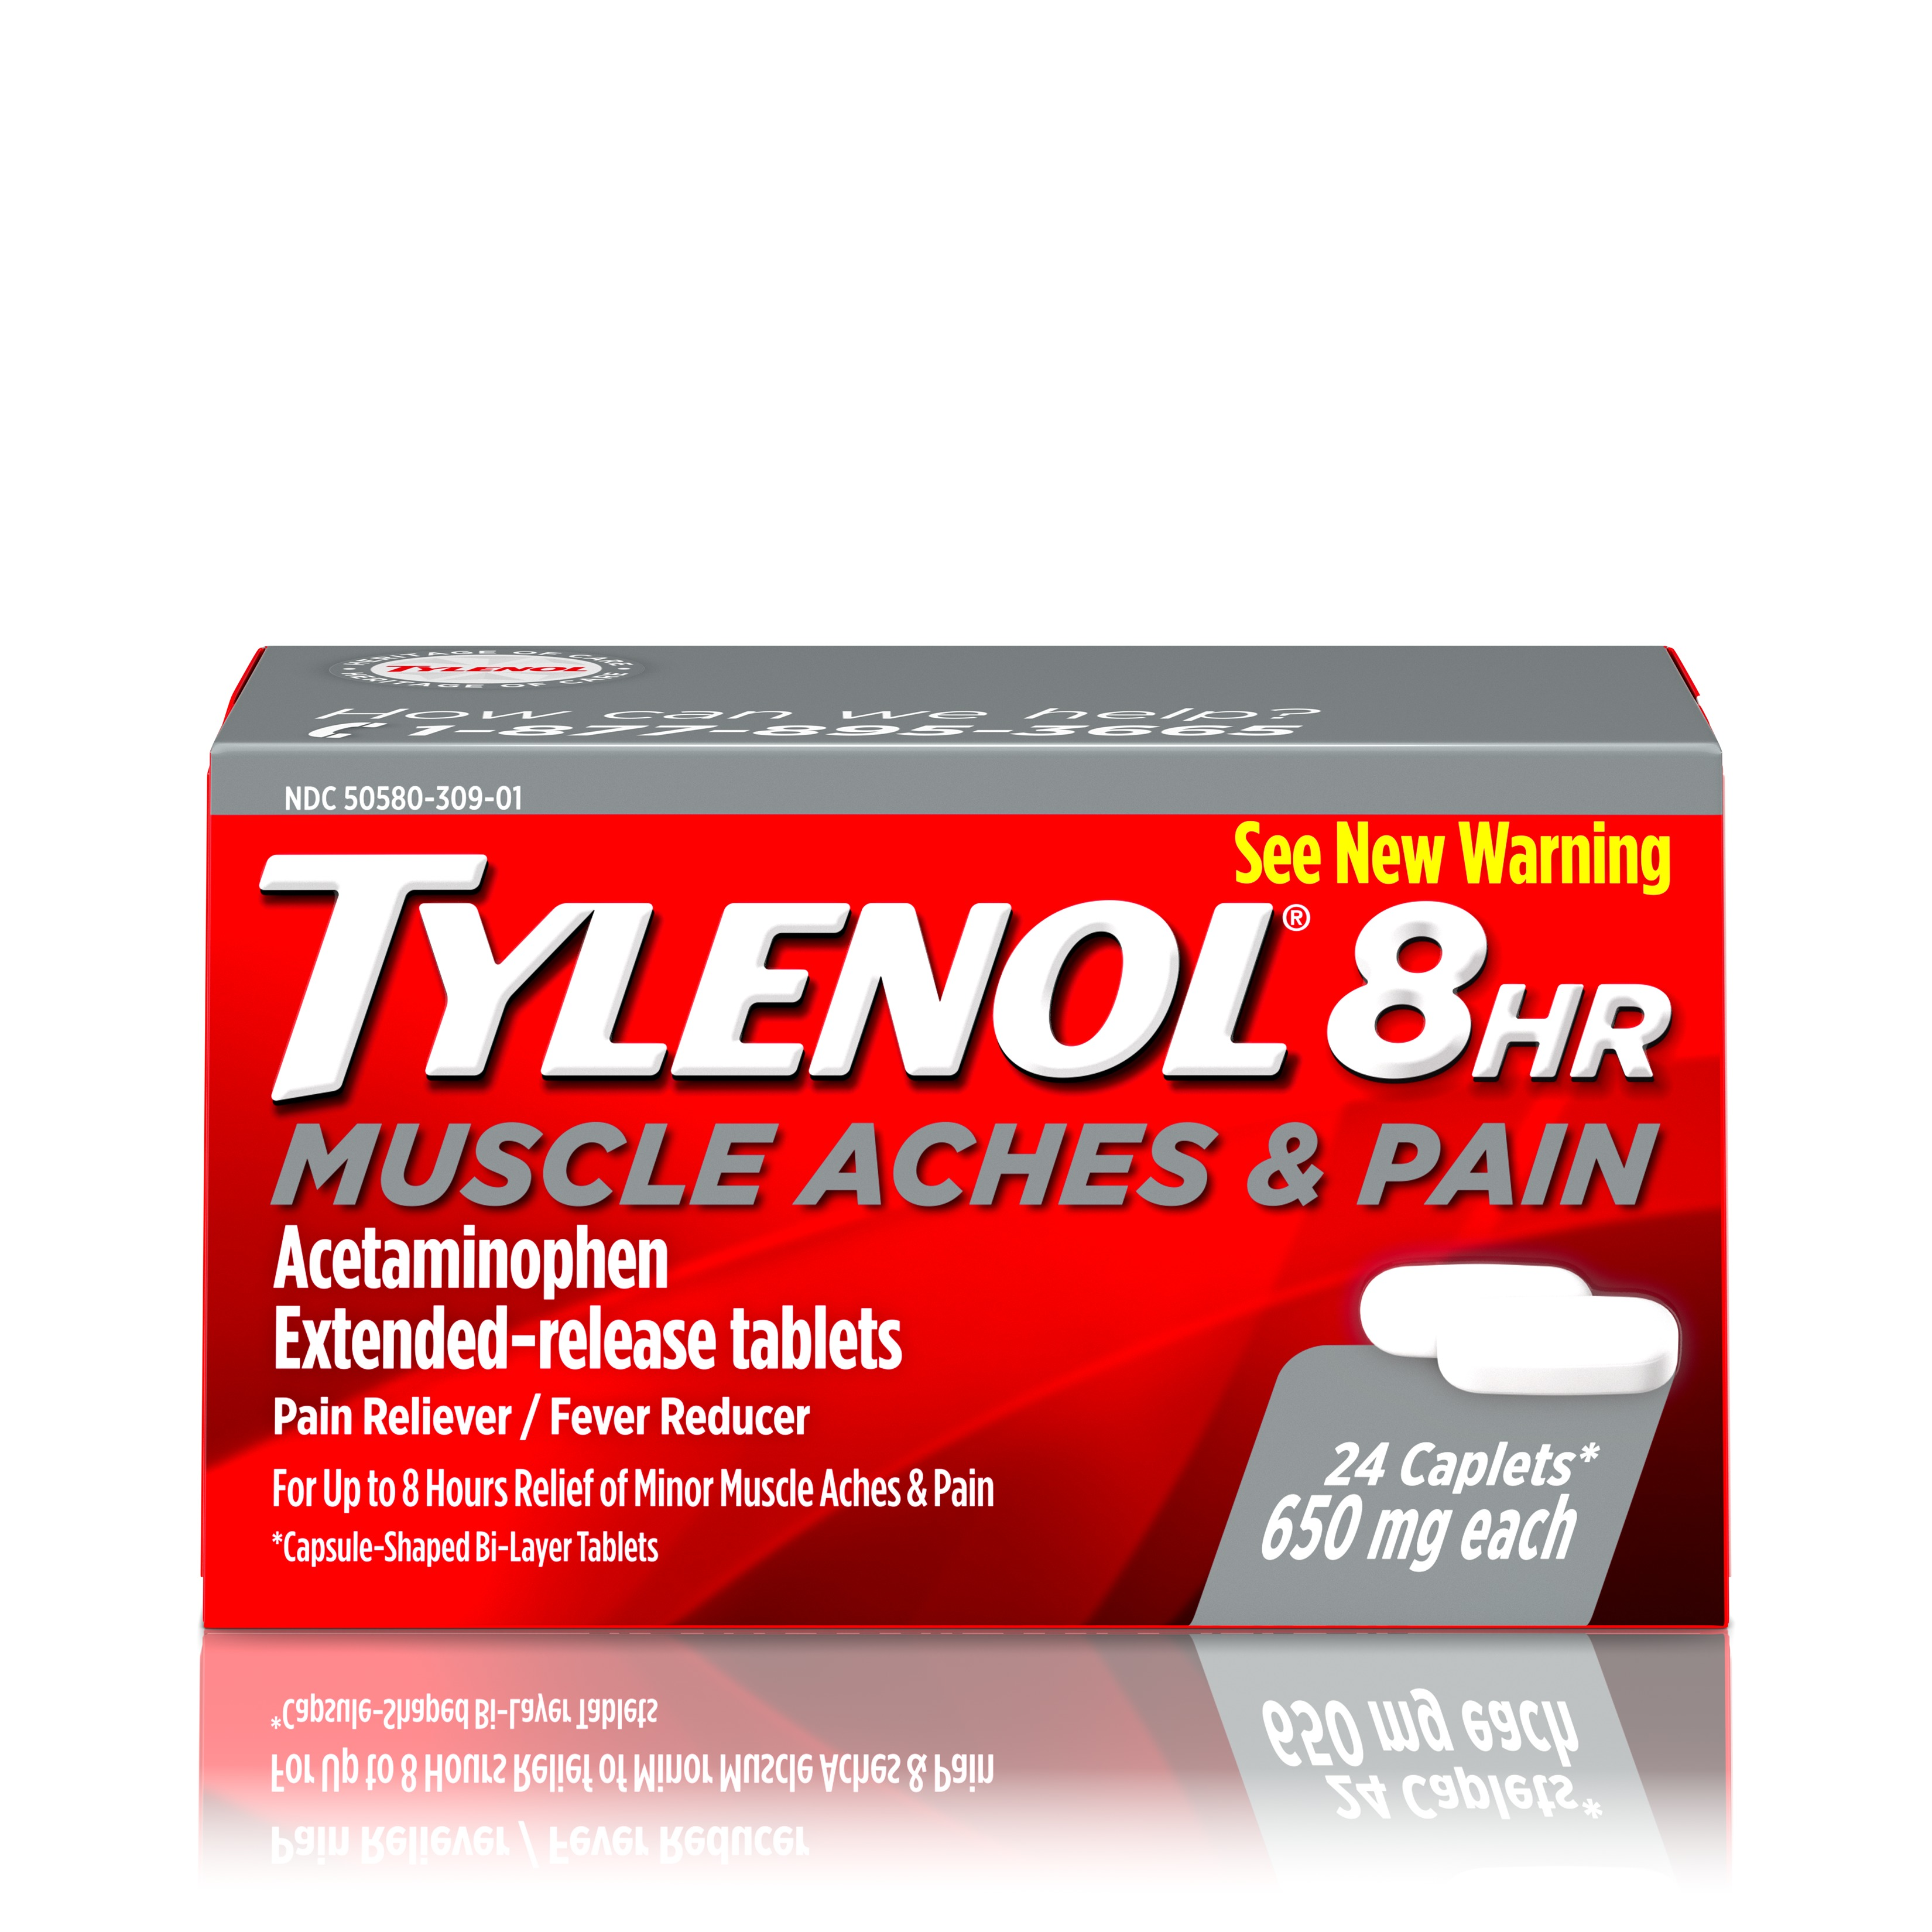 Tylenol 8 Hour Muscle Aches & Pain Tablets with Acetaminophen, 24 ct